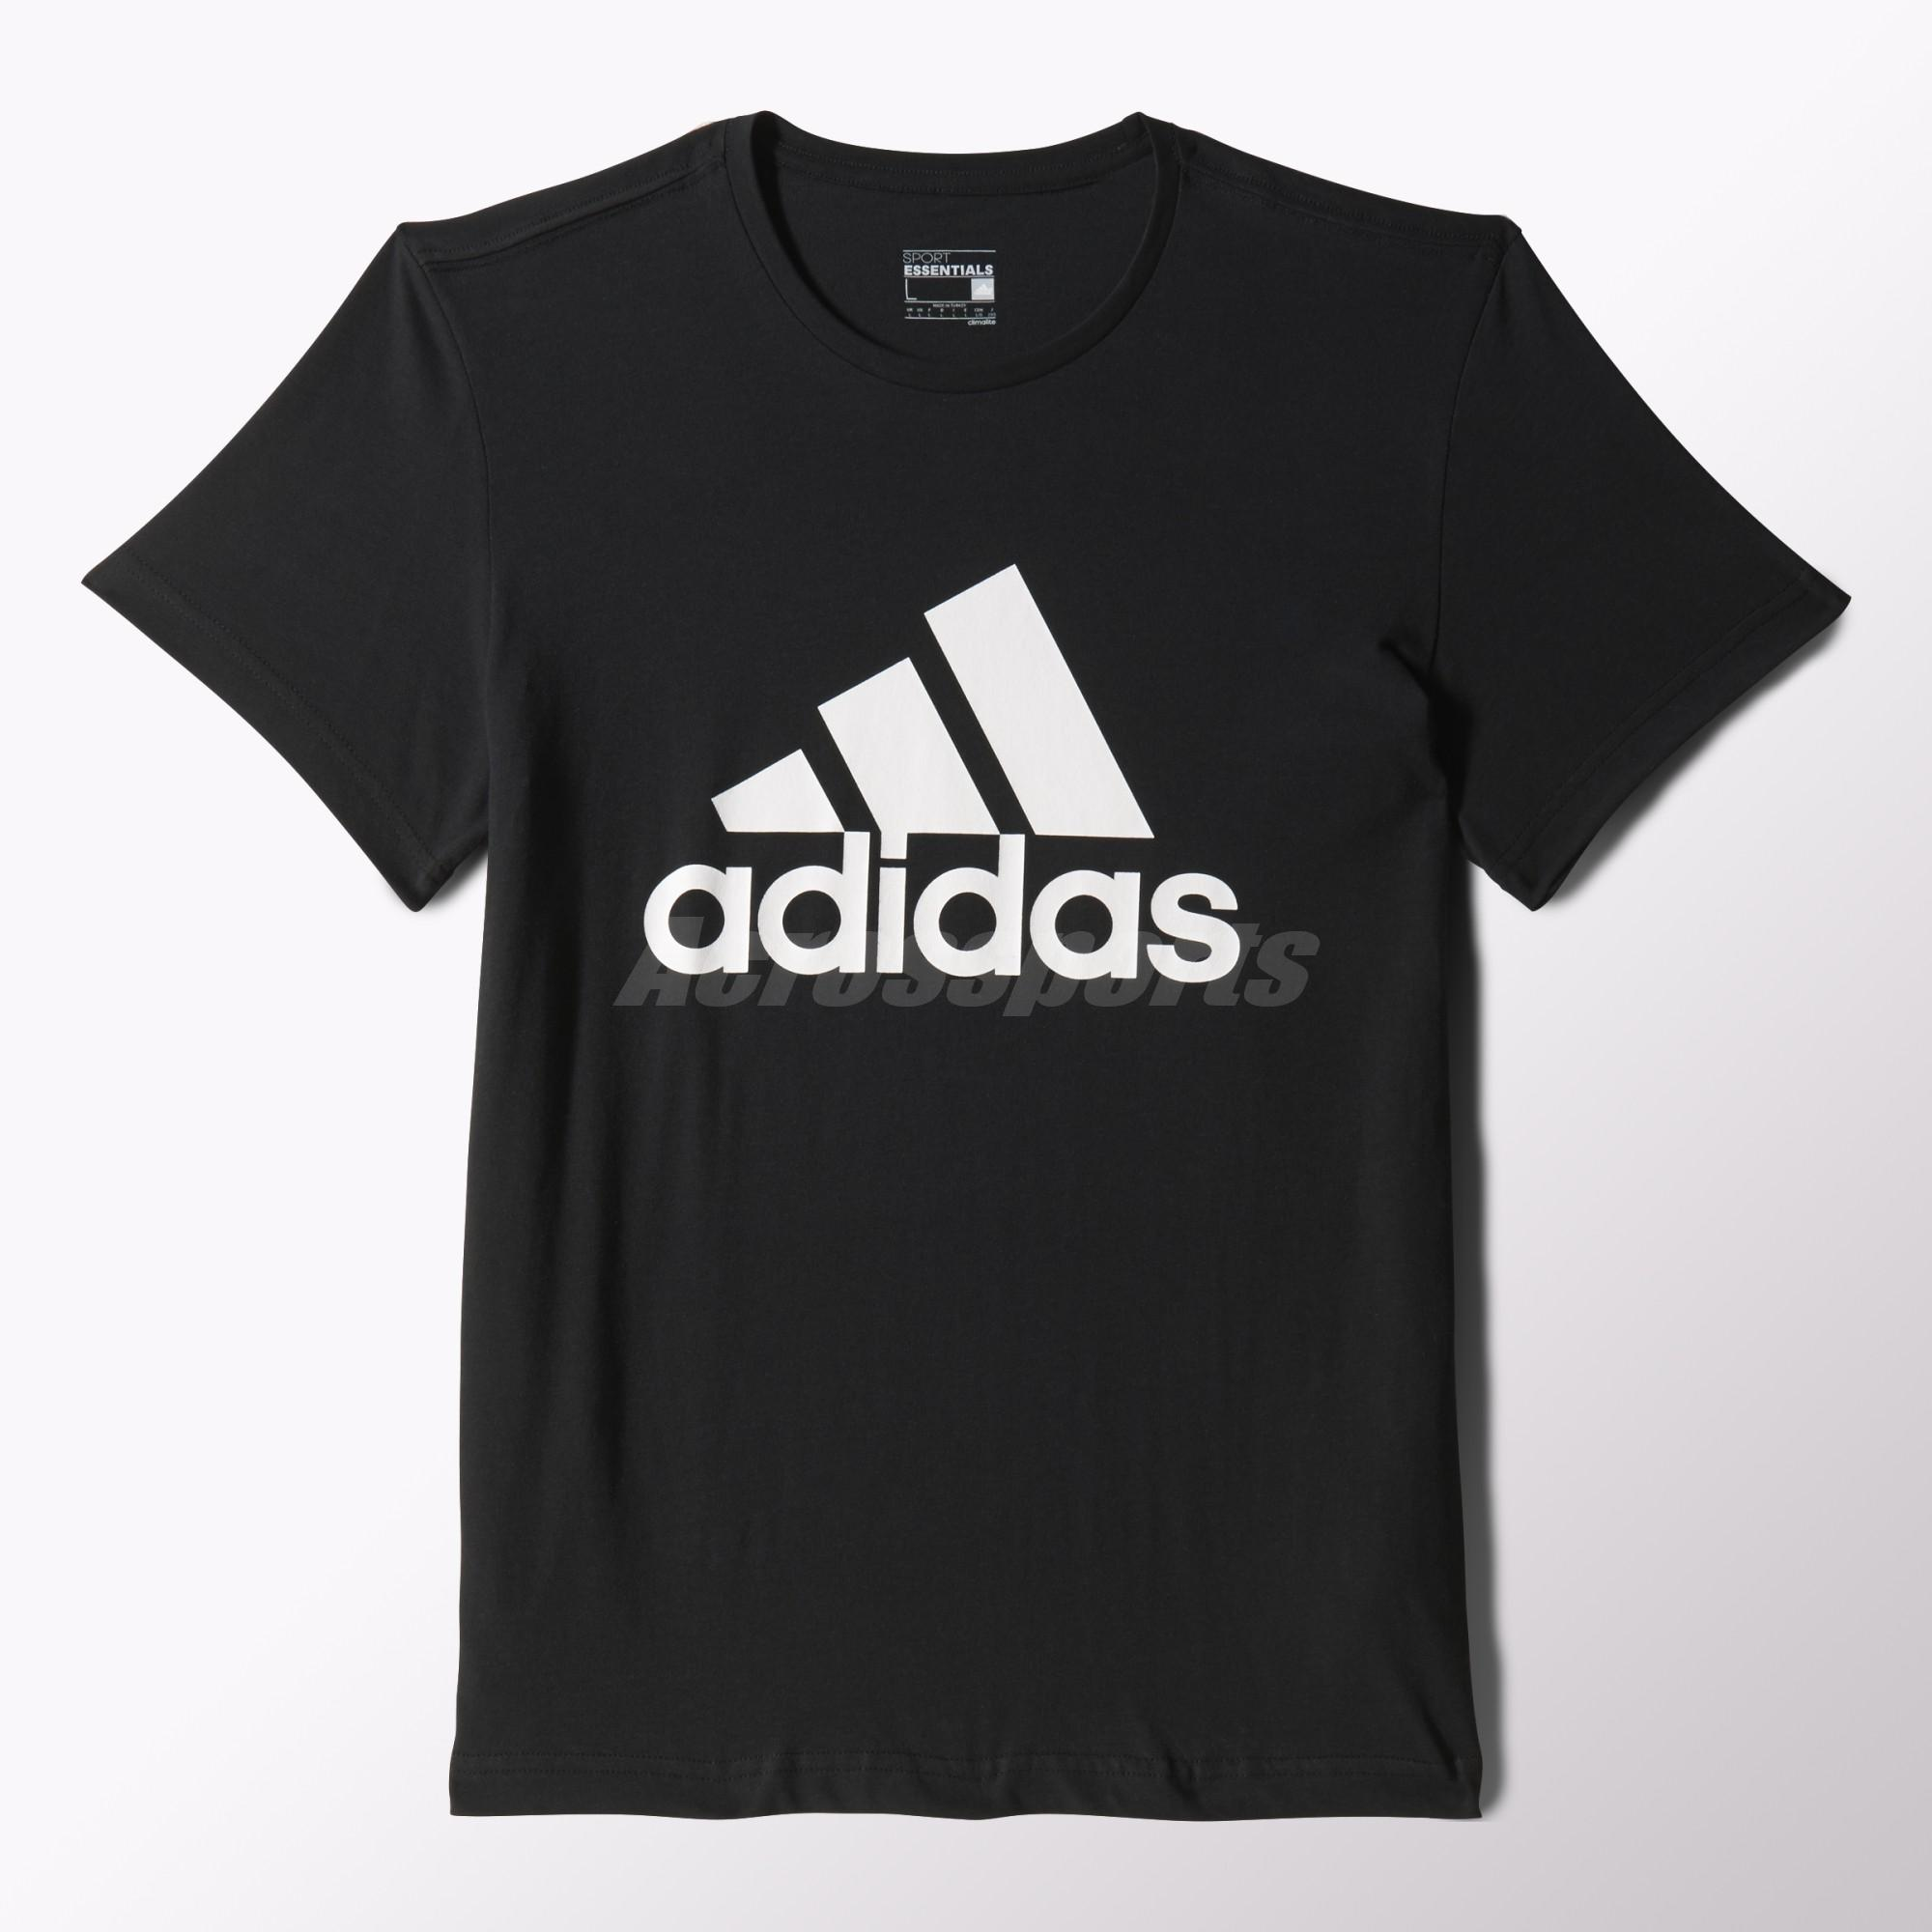 Details about adidas Men Essentials Tee Climalite T Shirt Sports Training Black White CD4864